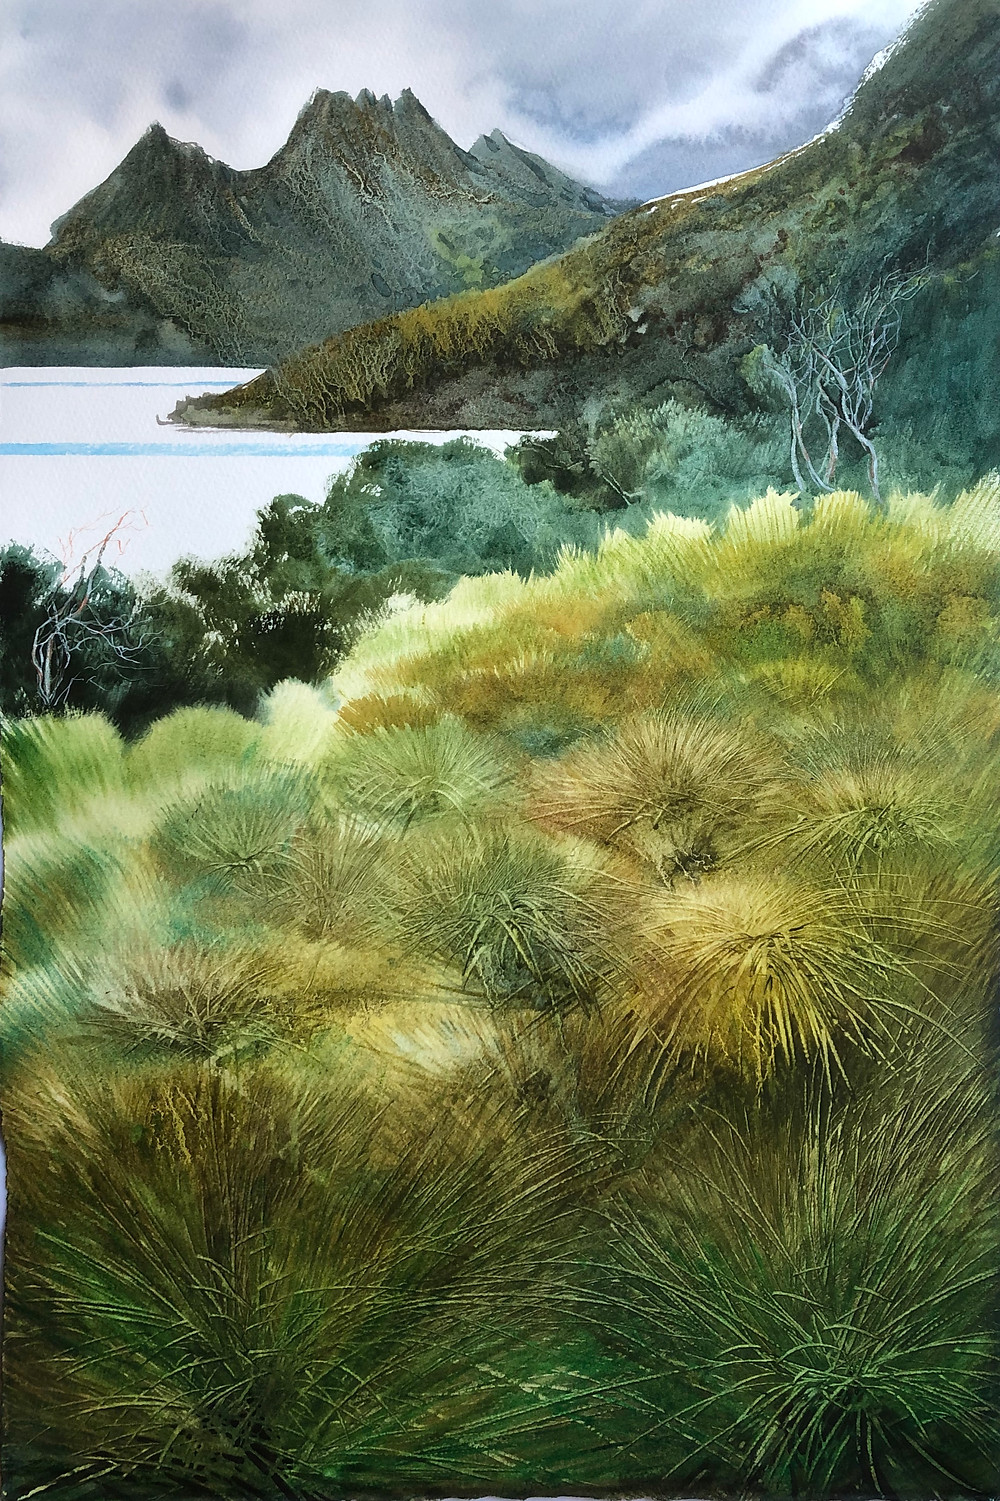 Yesmin Meltem Gozukara 'Button Grass Plains - Cradle Mountain' from August gallery.